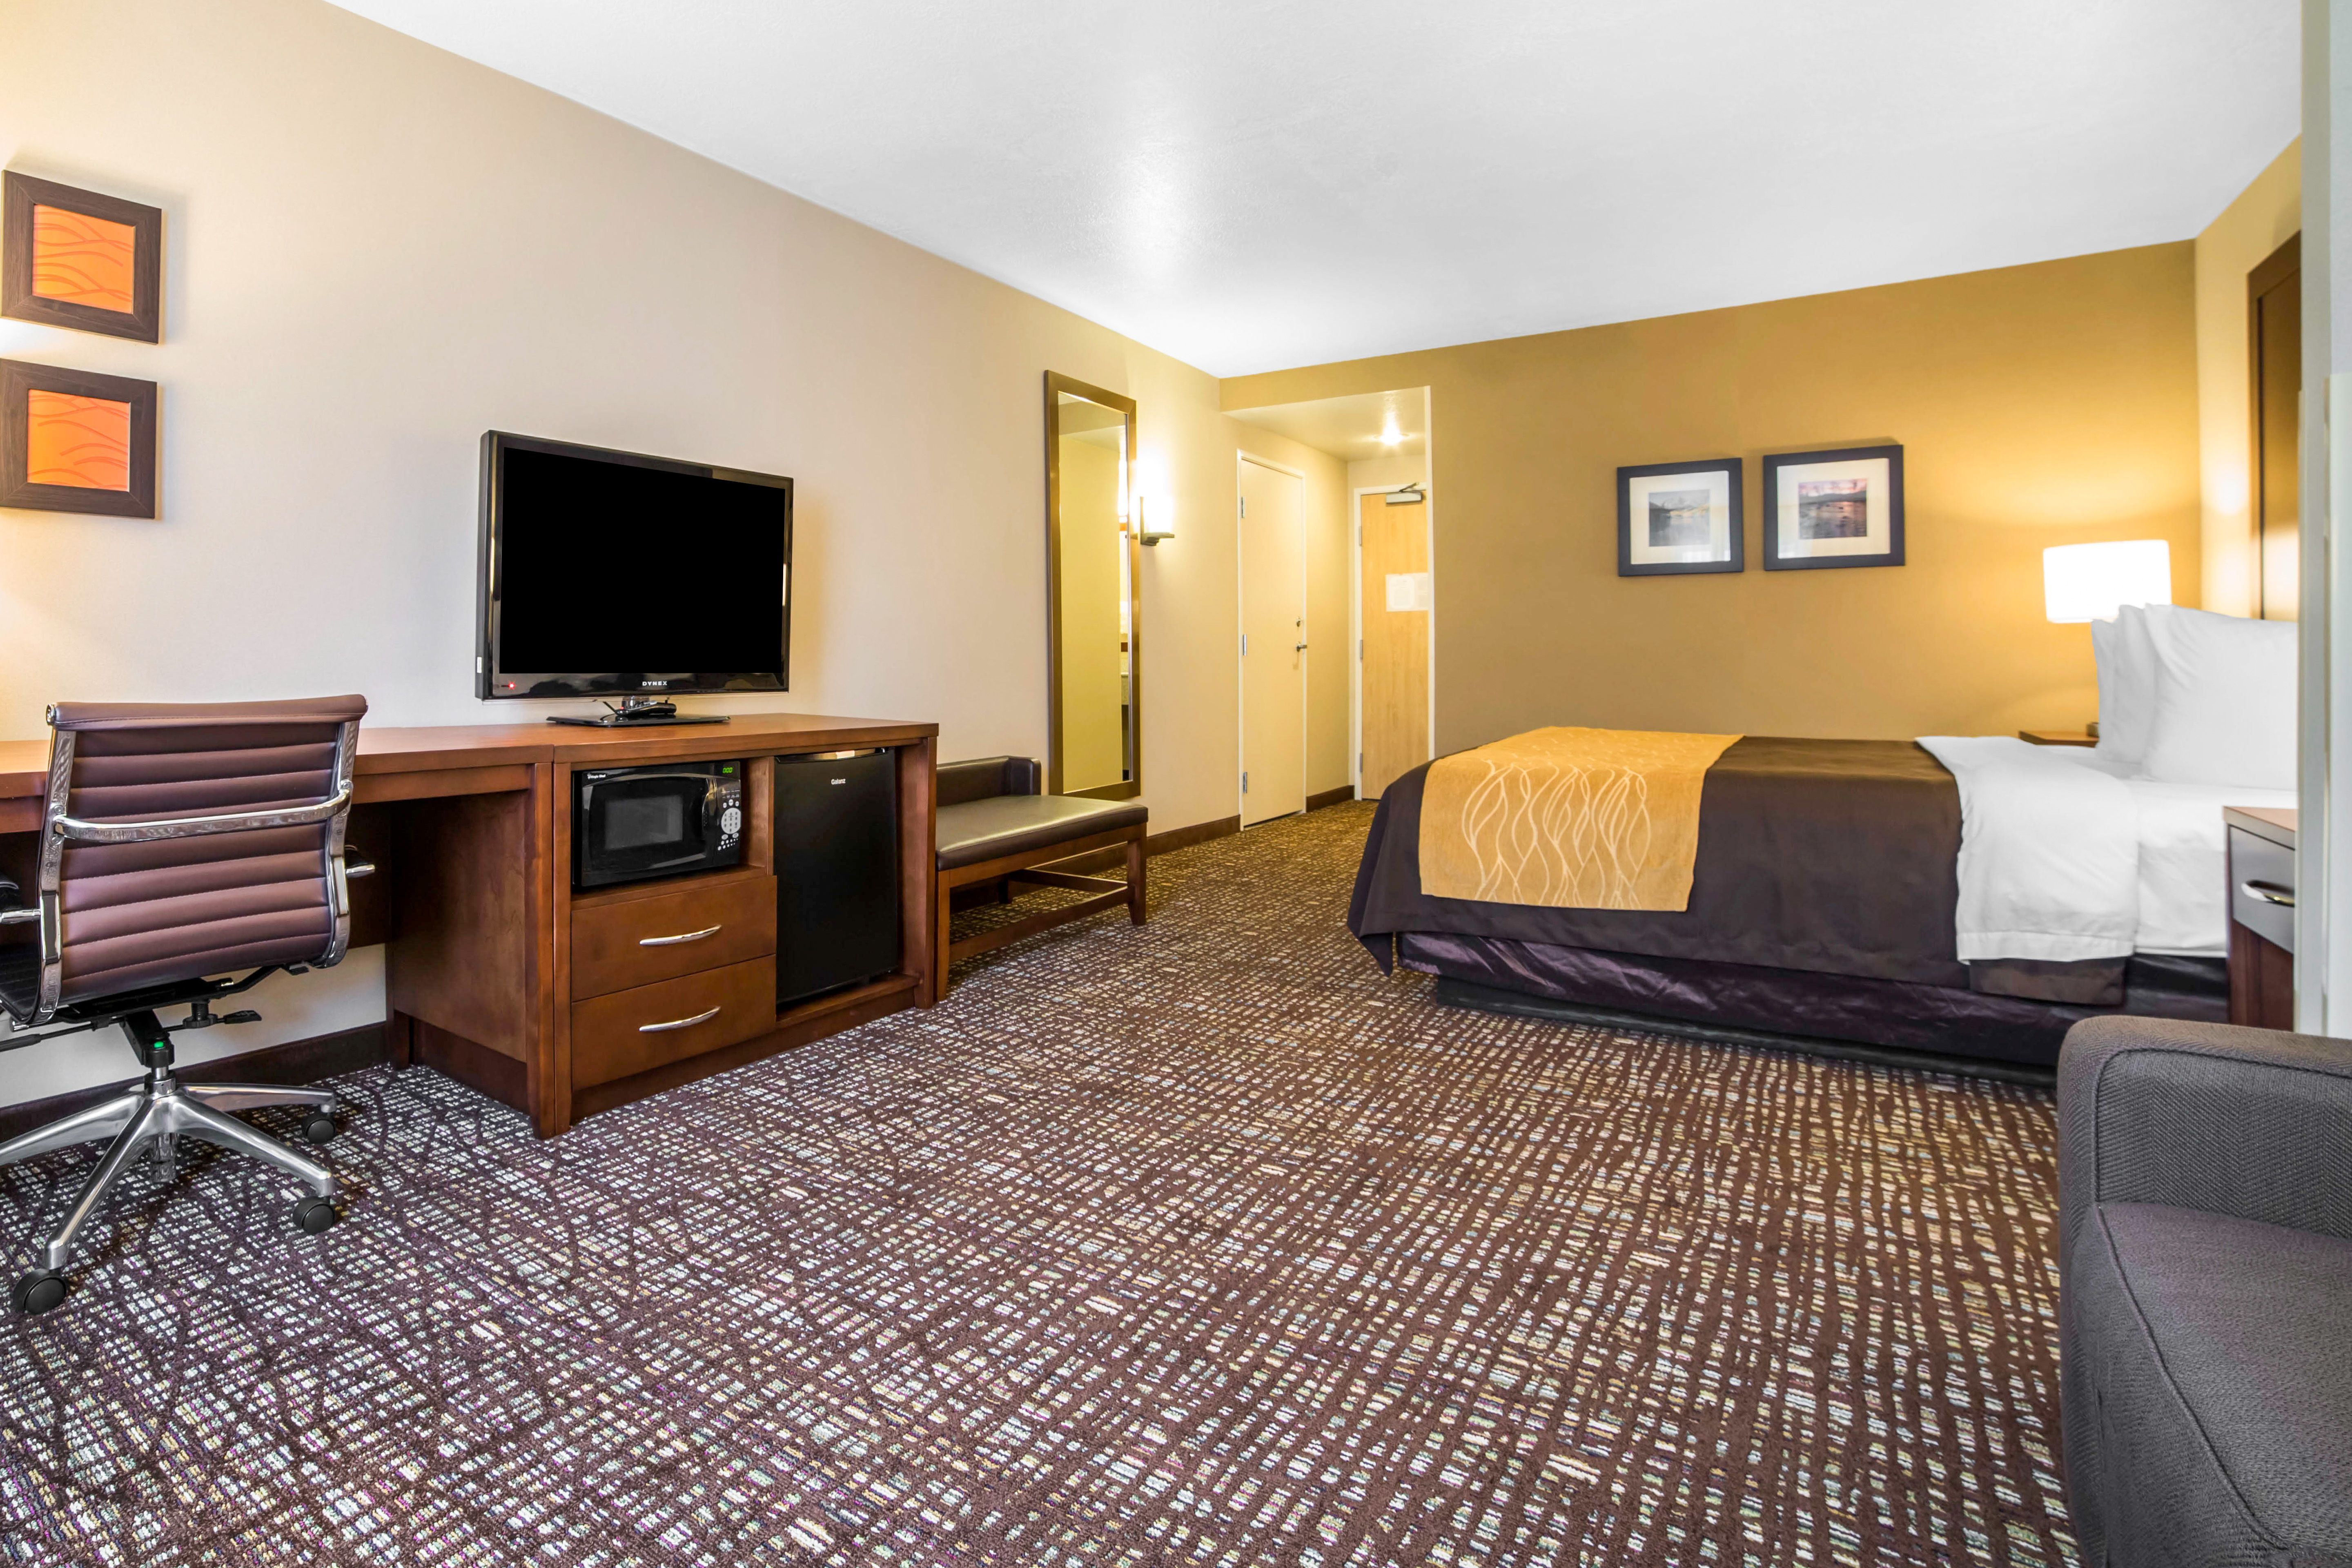 Hotel Near Byu Comfort Inn And Suites Suites Hotel